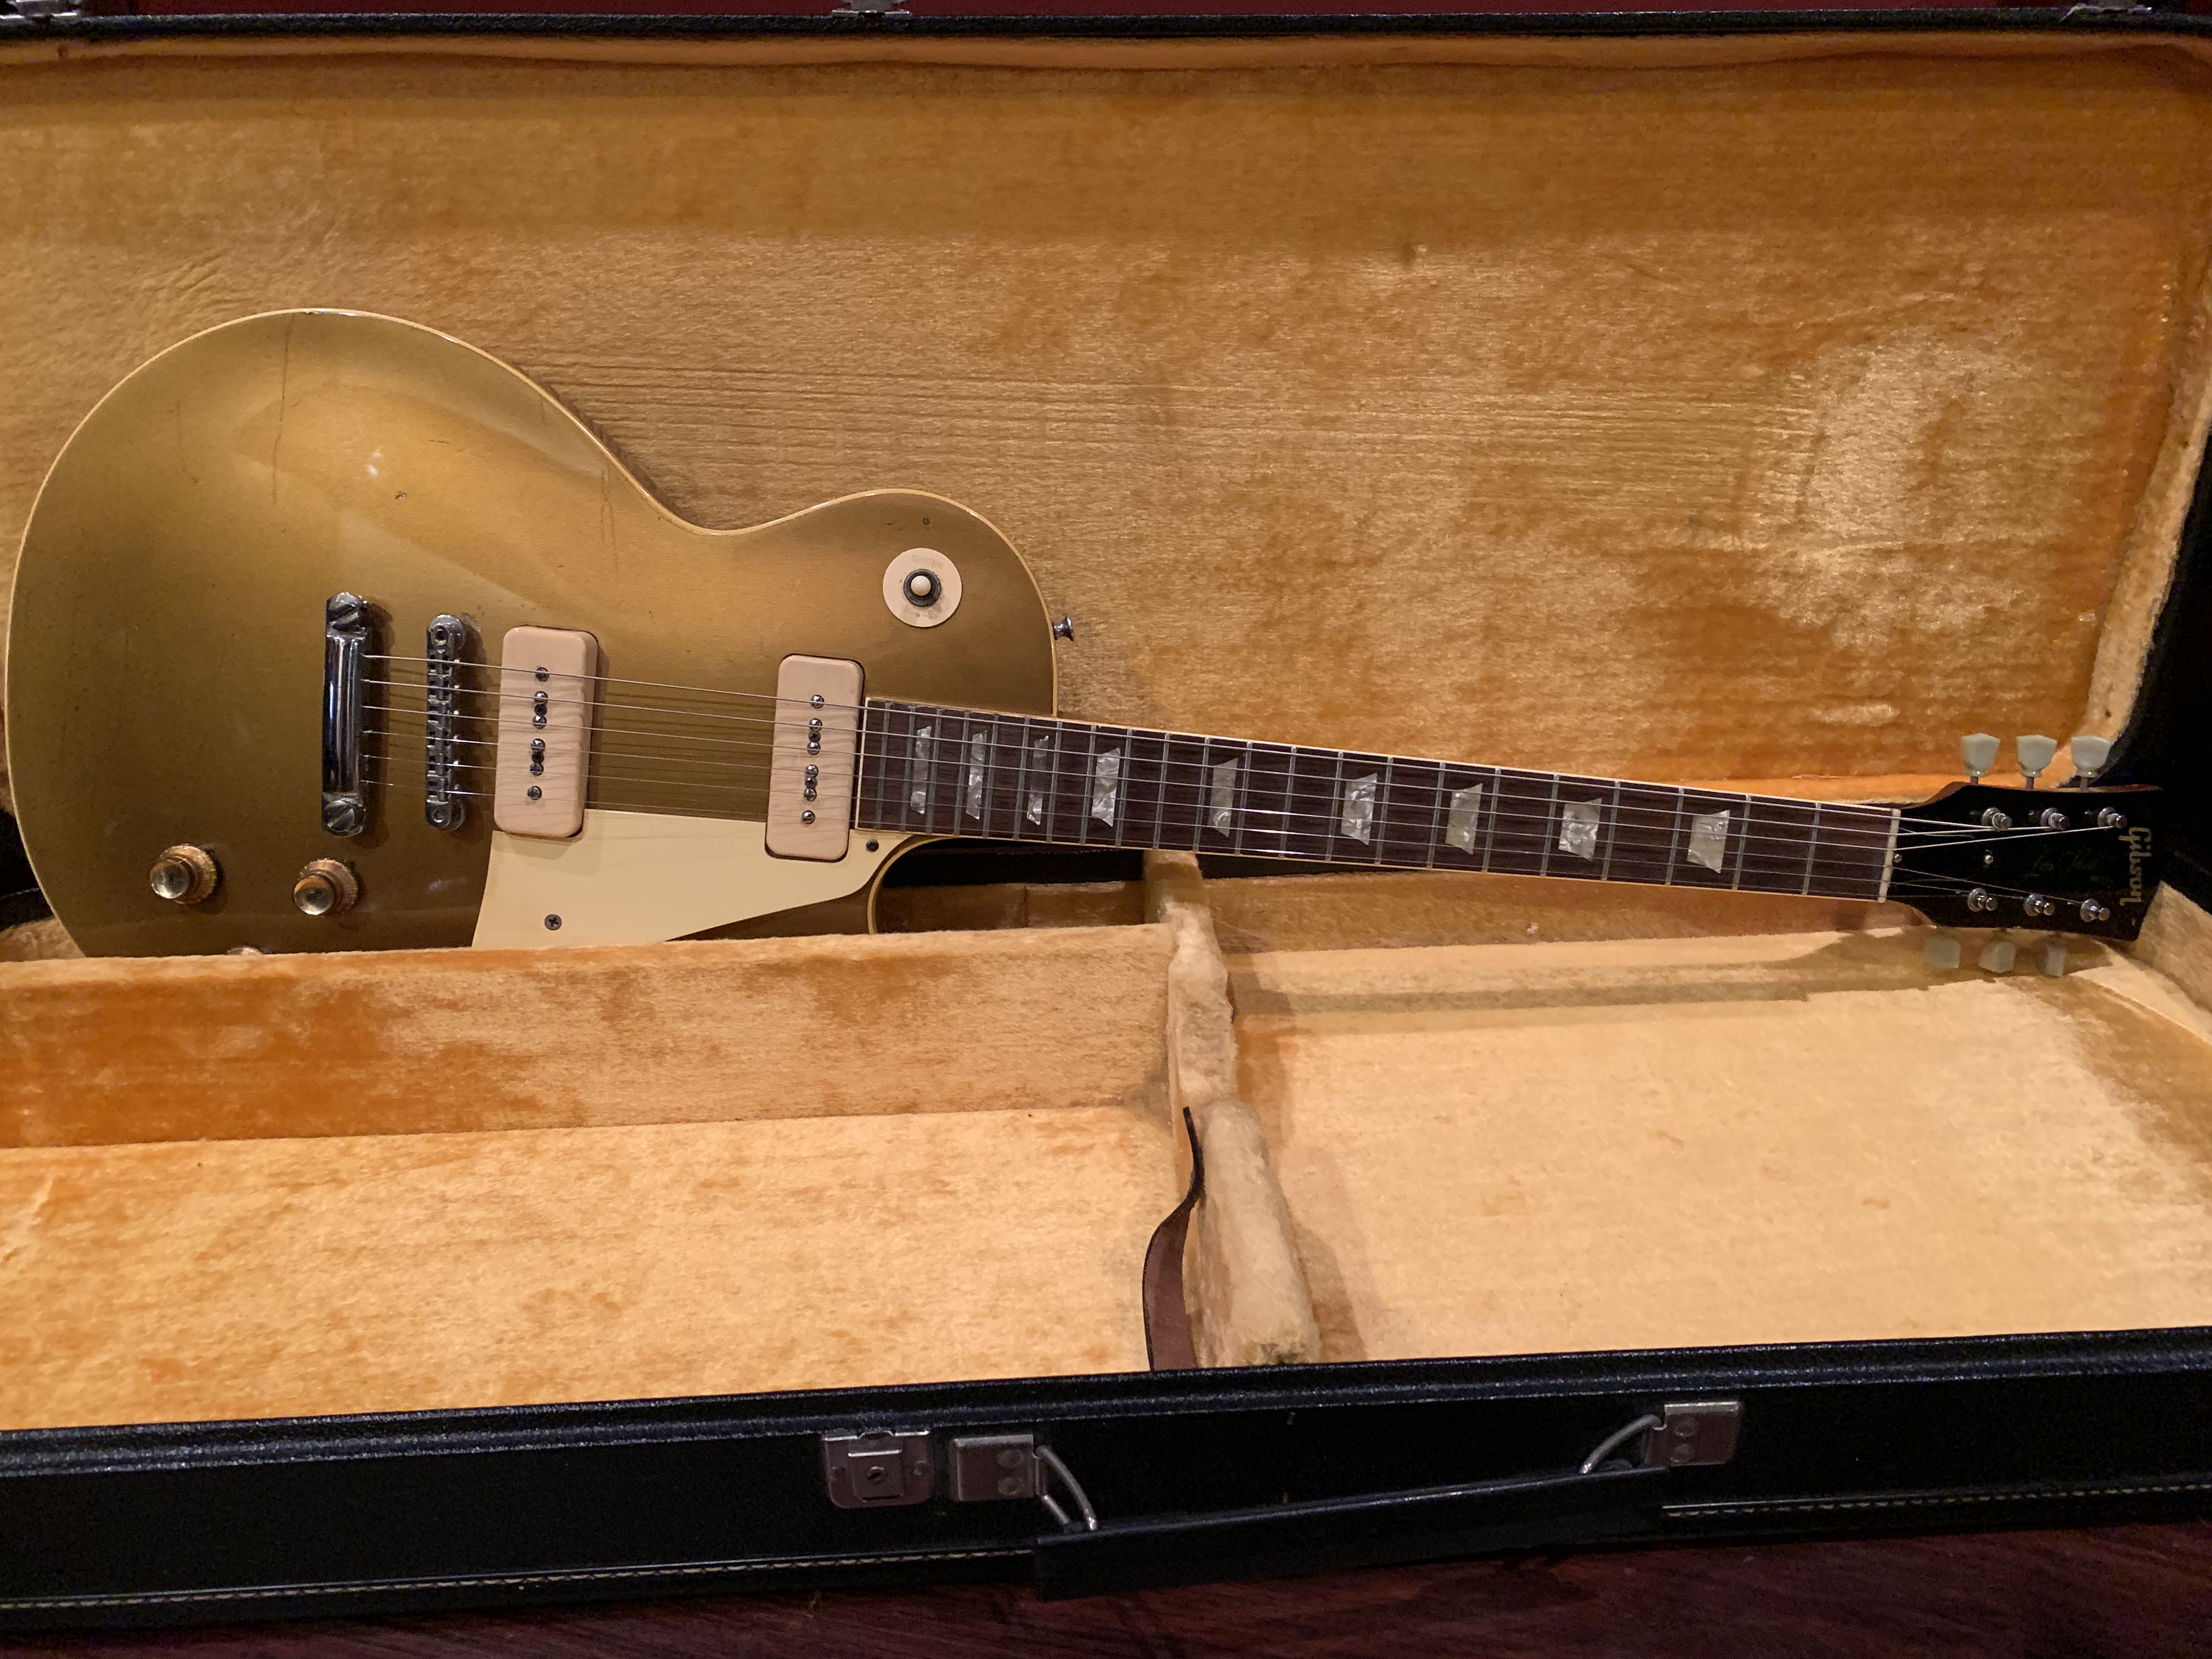 1968 Gibson Les Paul Gold Top #531209